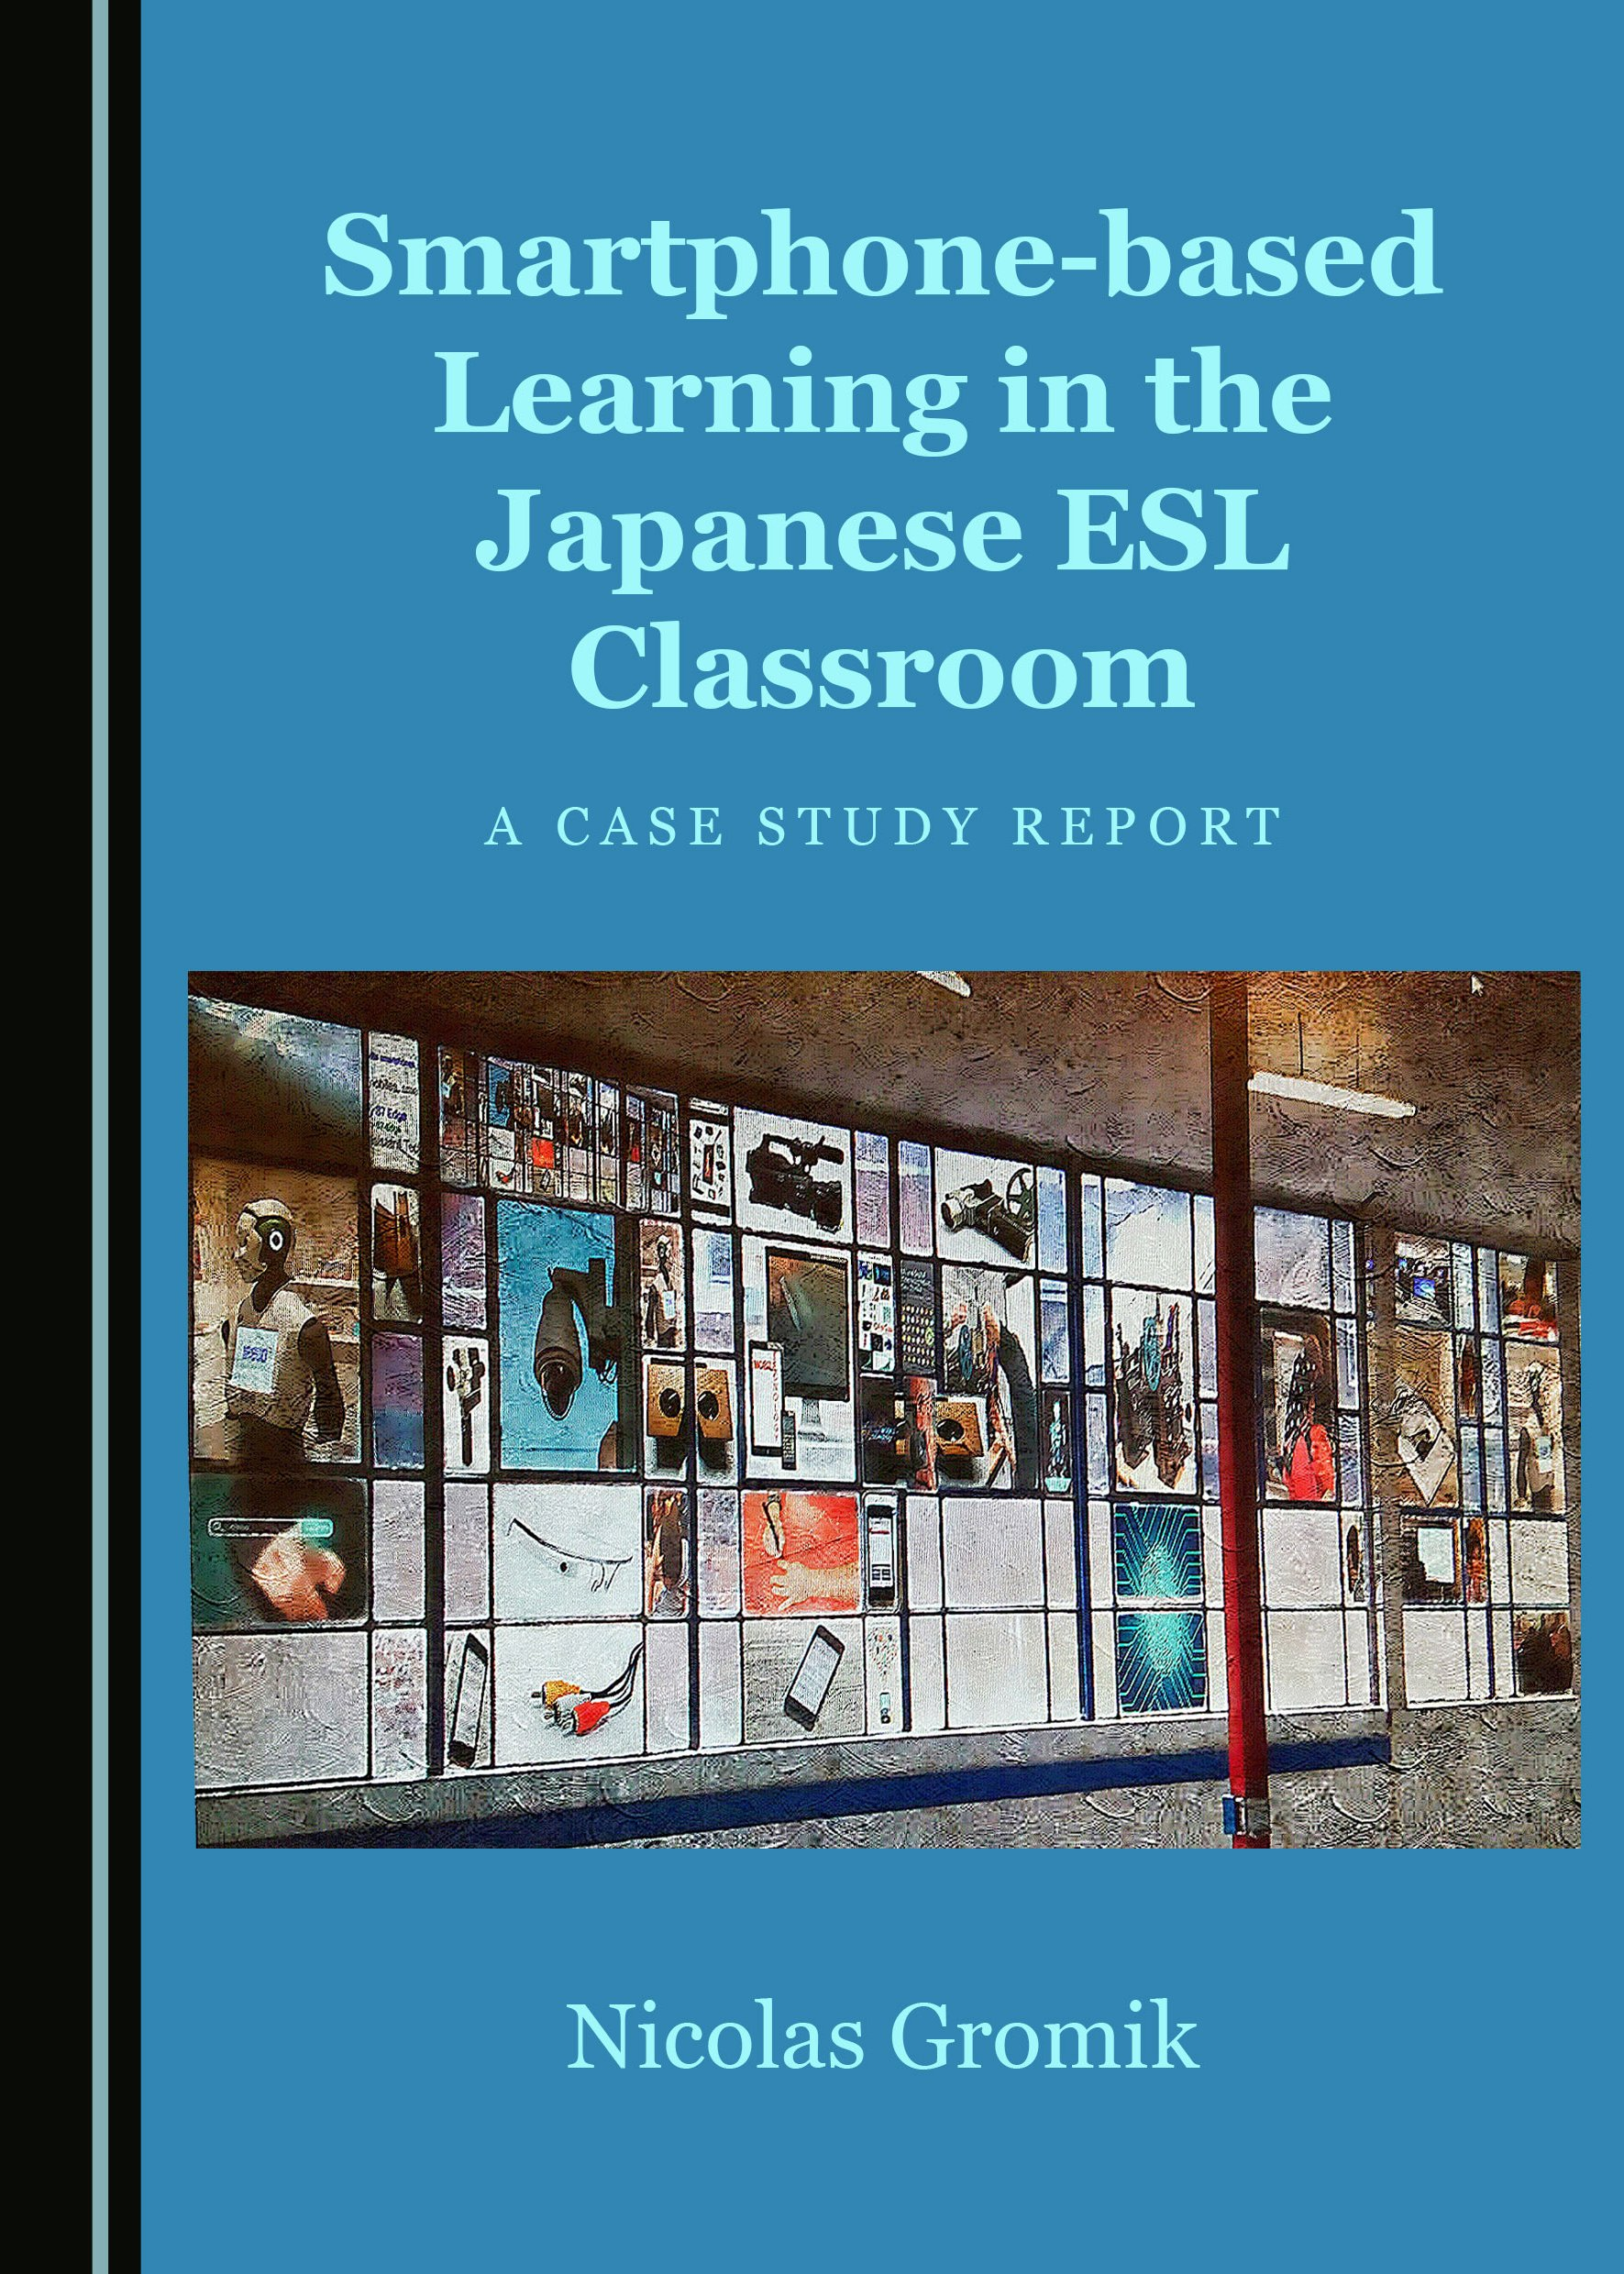 Smartphone-based Learning in the Japanese ESL Classroom: A Case Study Report